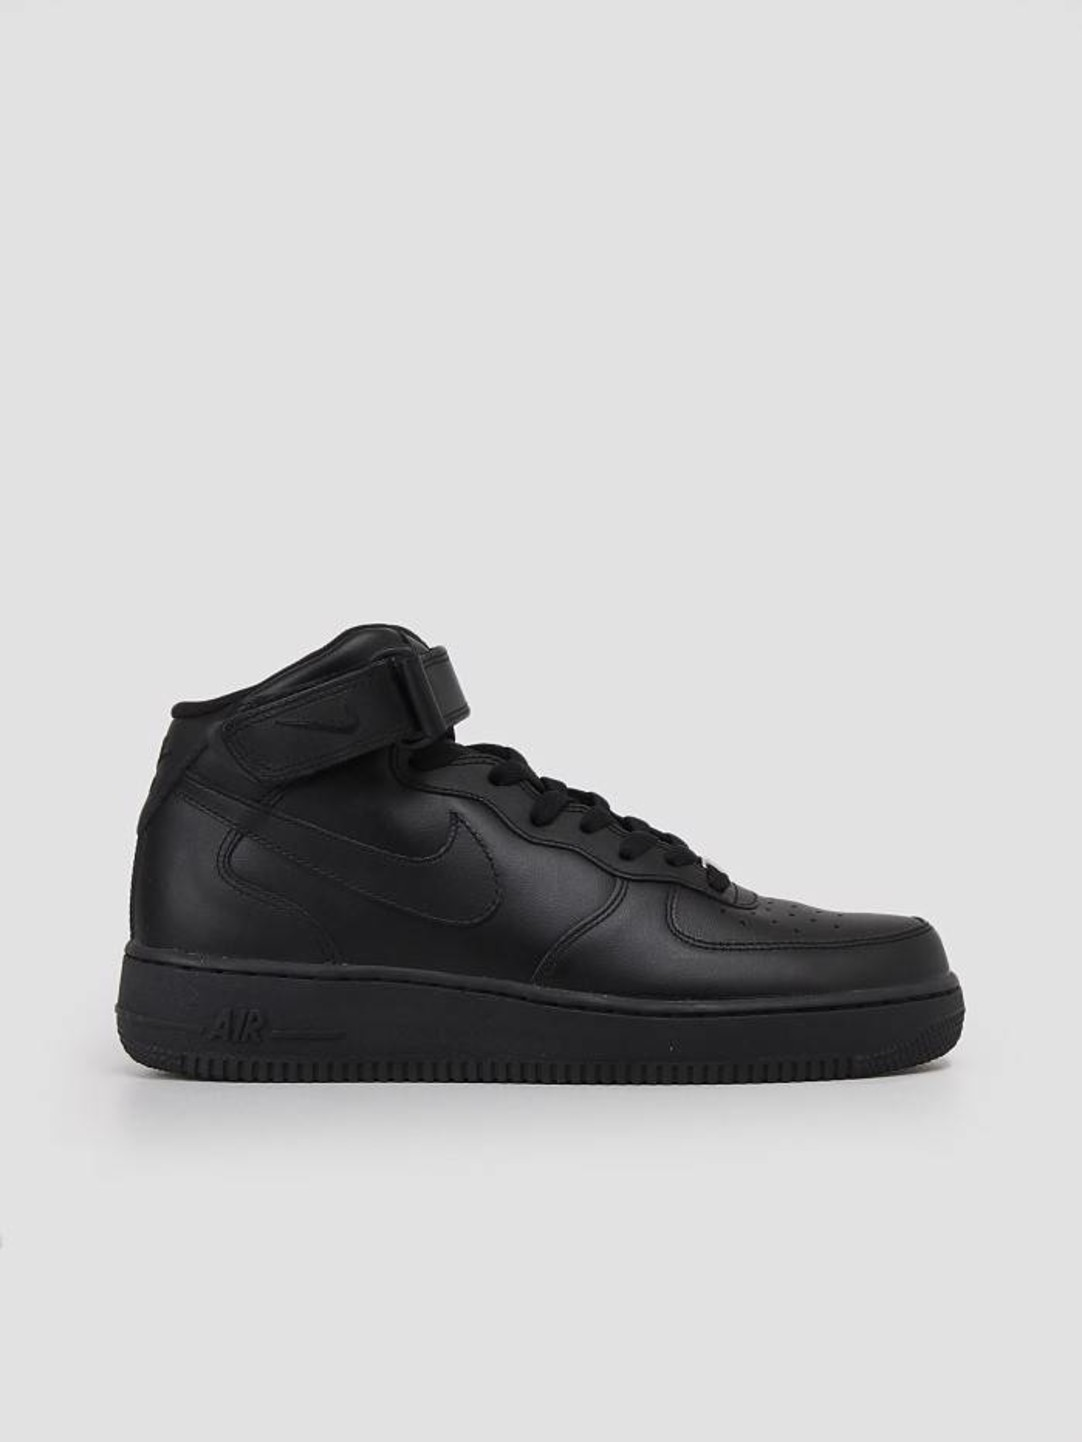 sale retailer 4e441 6e238 Nike Nike Air Force 1 Mid 07 Black 315123-001